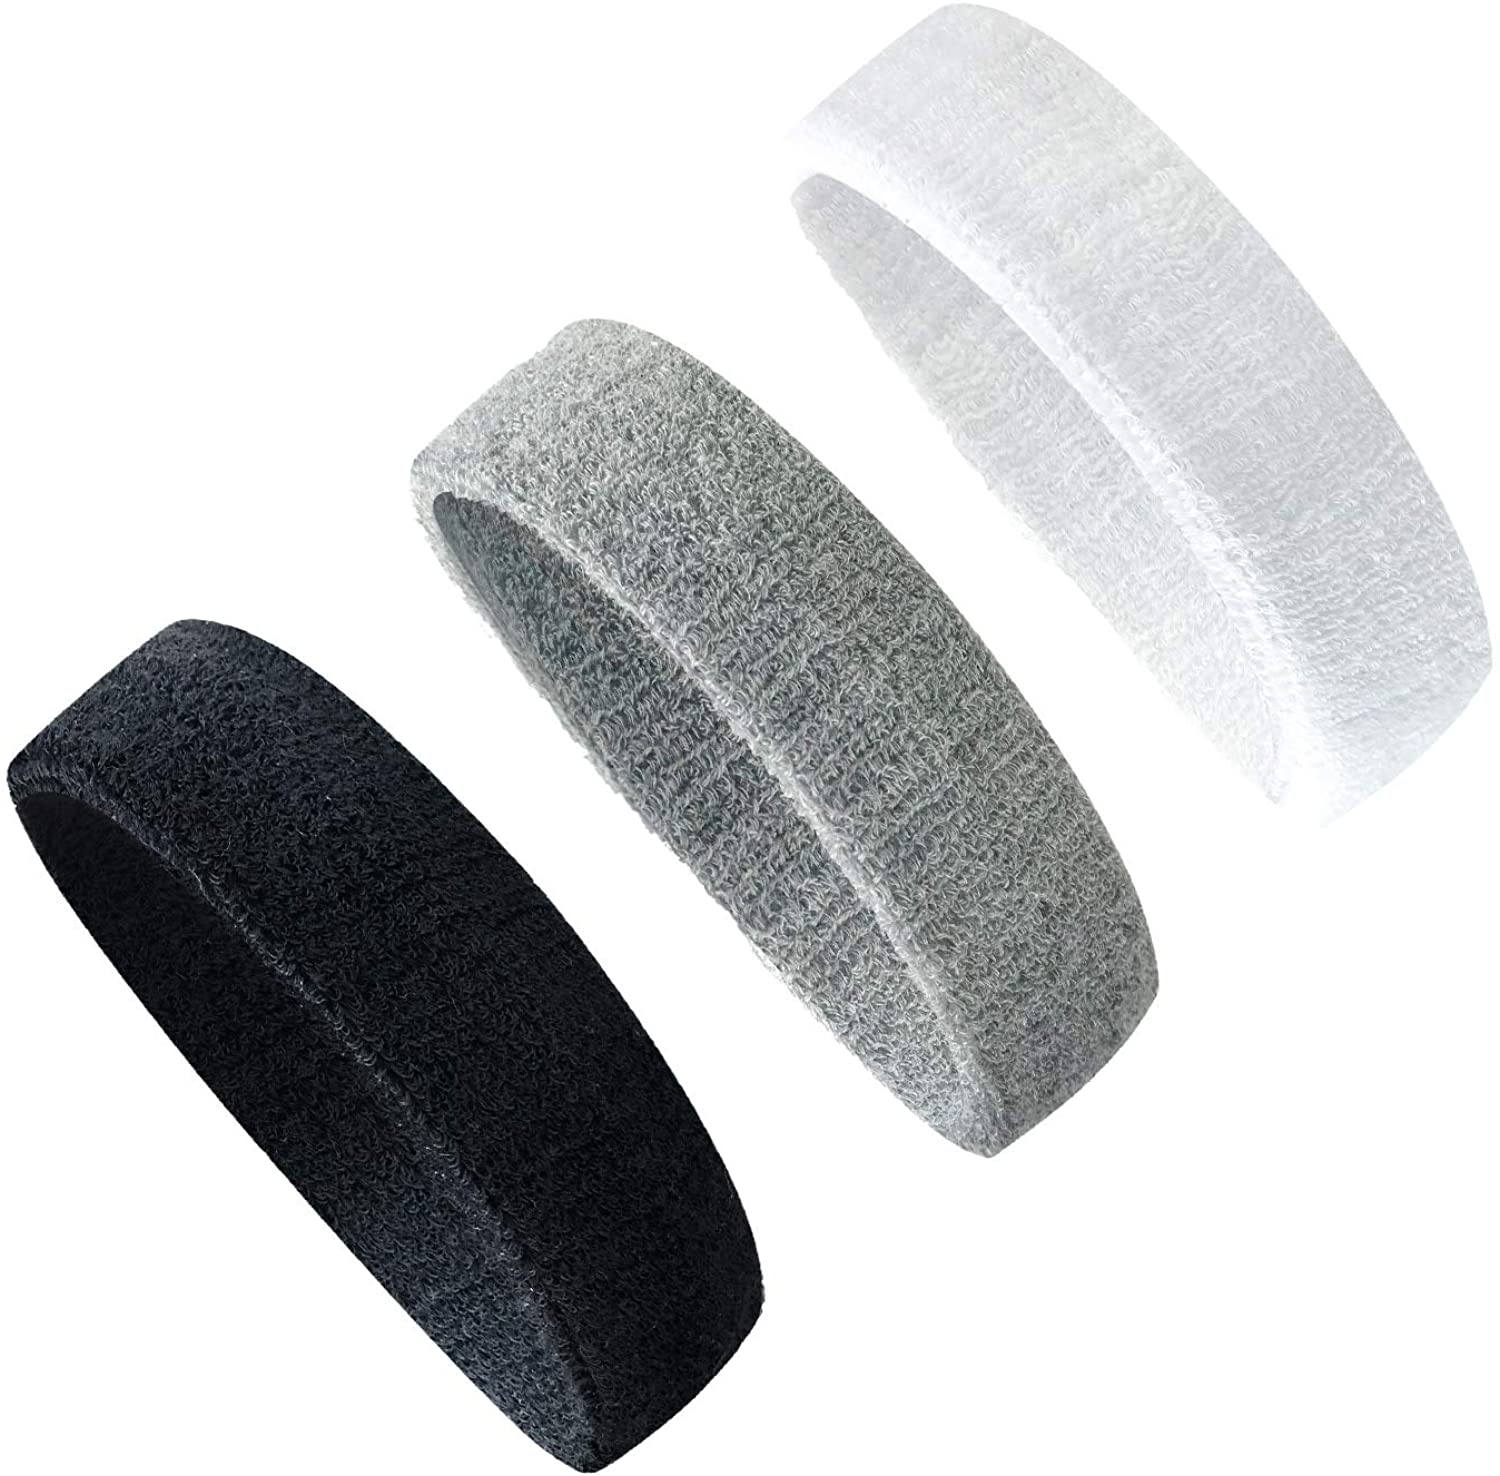 LERTREE 3PCS Men Women Sweatband Headband for Yoga Basketball Gym Sport Working Out Stretchy Head Hair Band